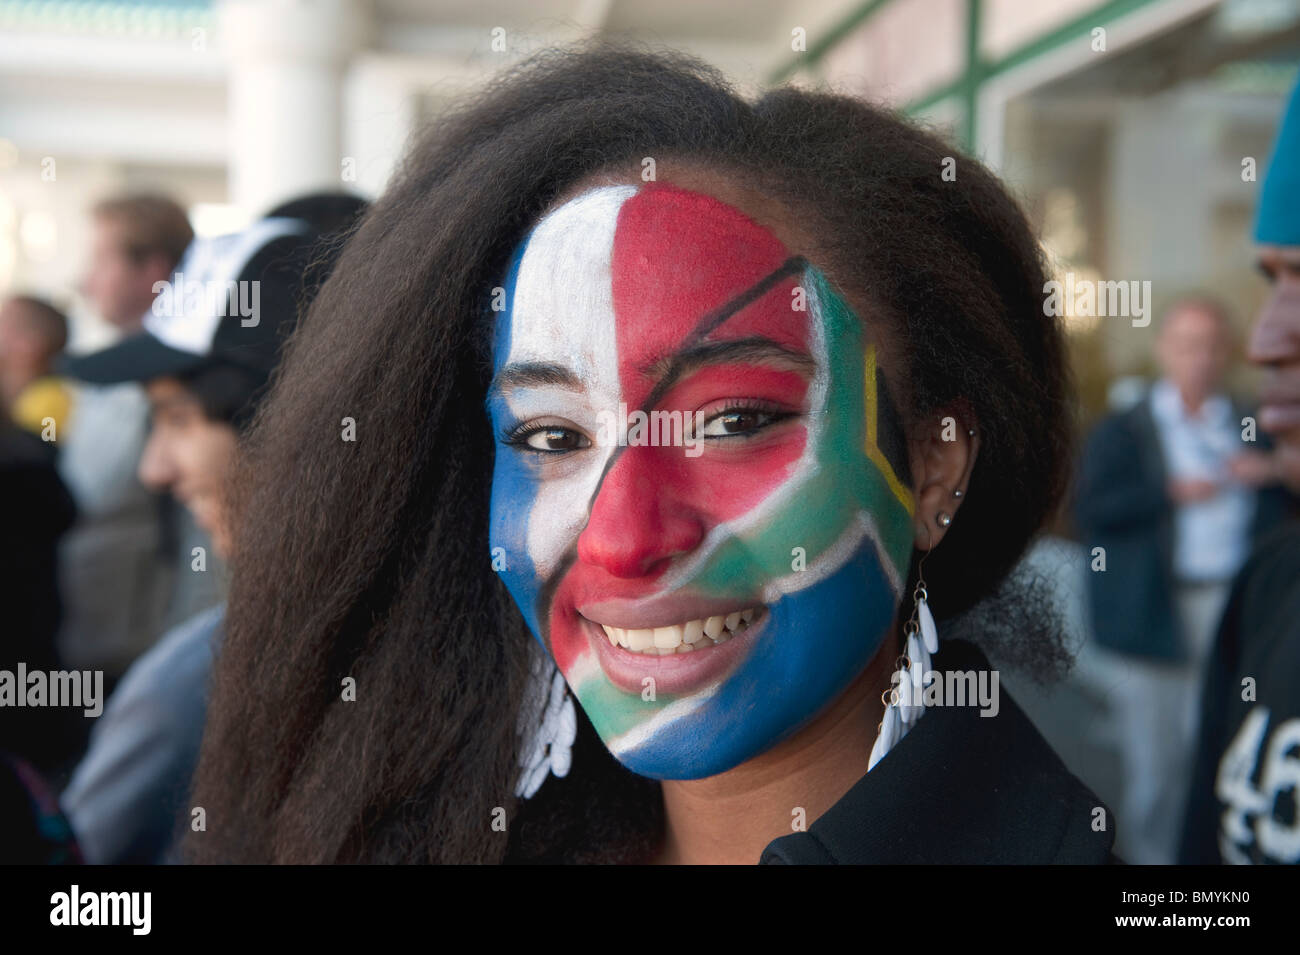 Supporter face painted with South African flag FIFA World Cup 2010 in Cape Town South Africa - Stock Image